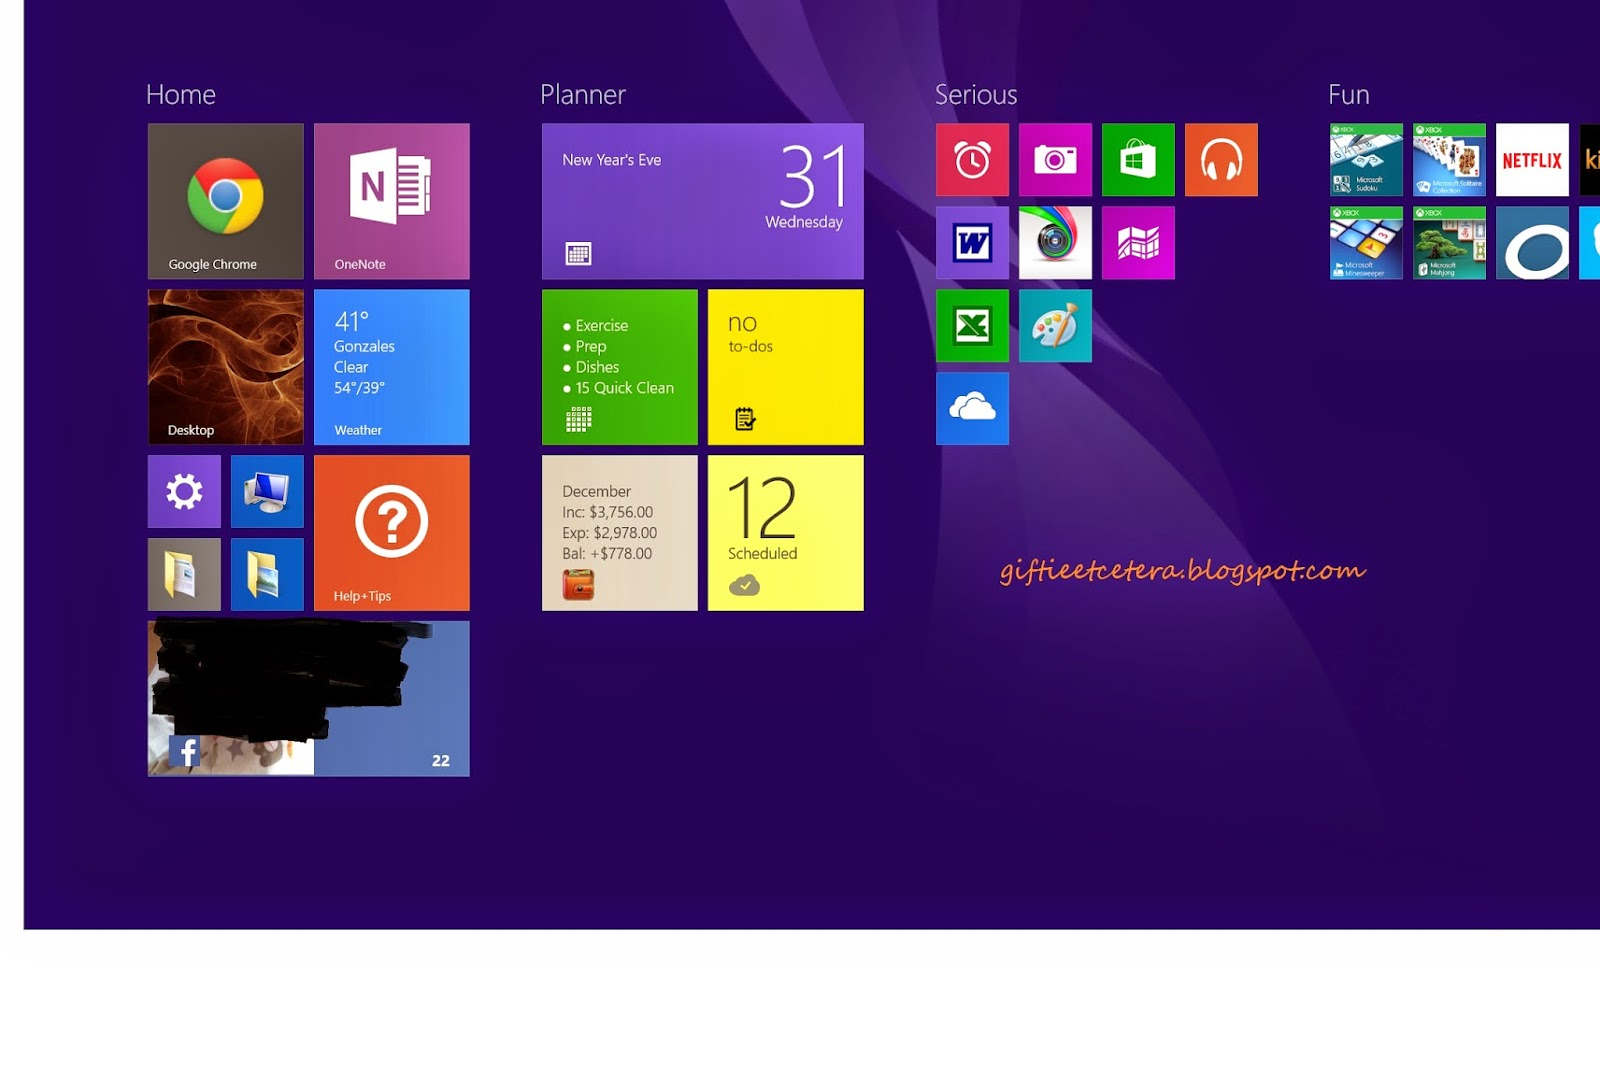 Giftie etcetera surface pro 3 and onenote tips to use onenote and